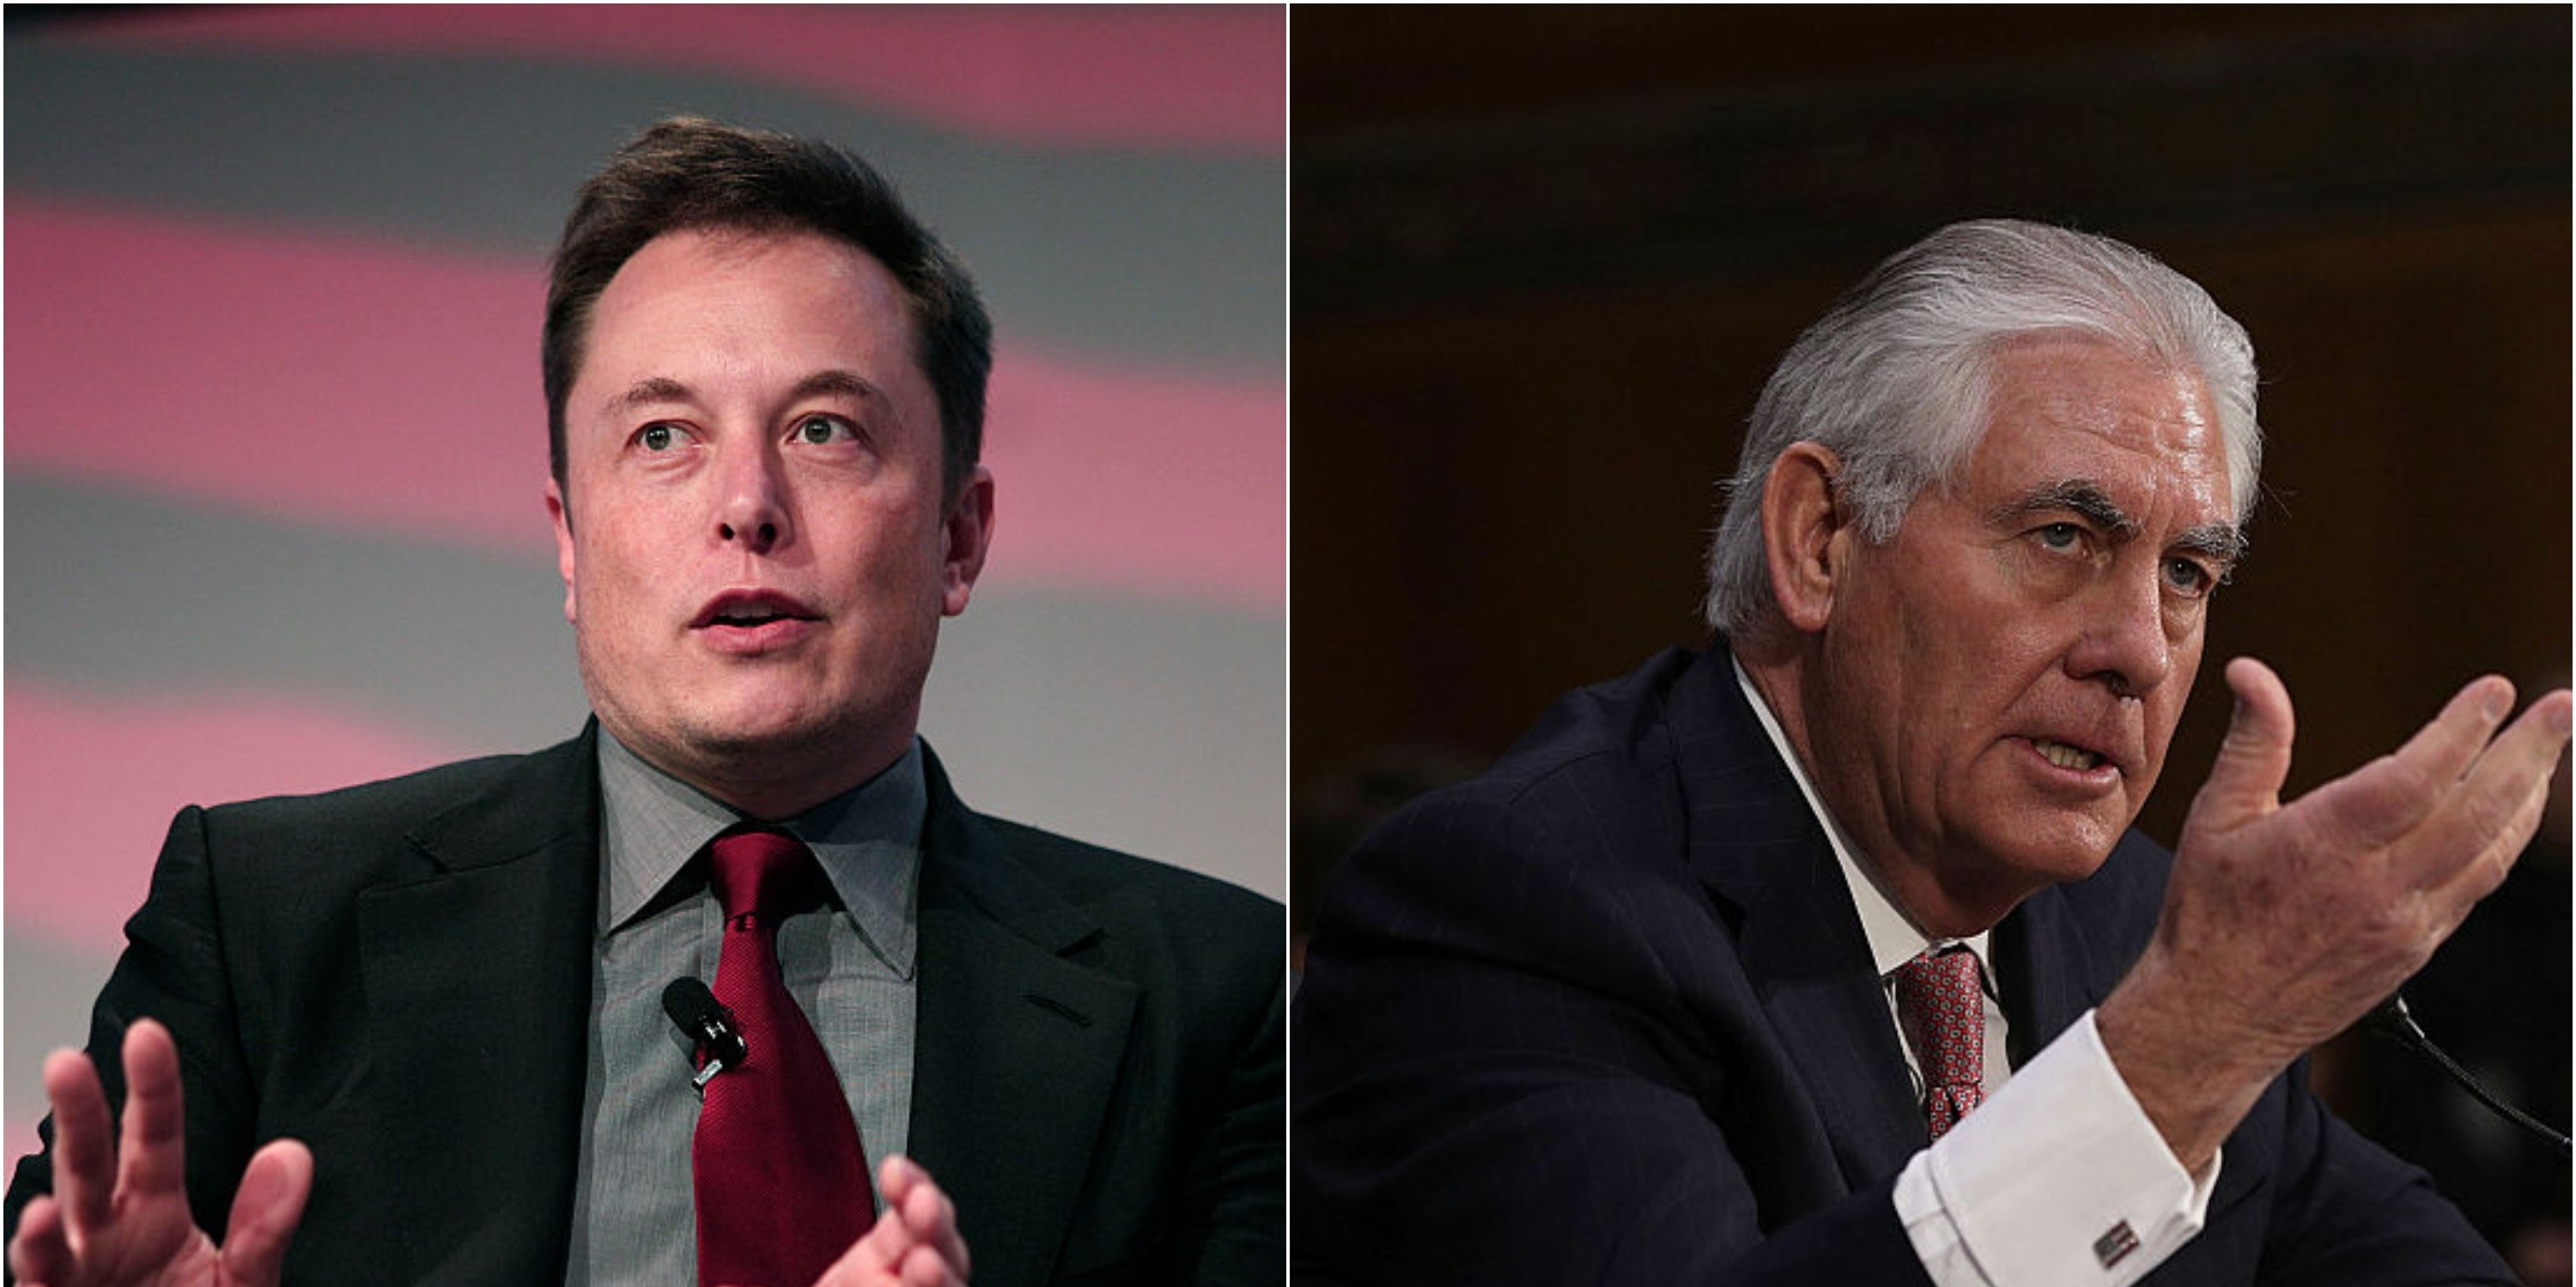 Tesla CEO Elon Musk Defends Rex Tillerson: 'No Better Person' to Push for Carbon Tax